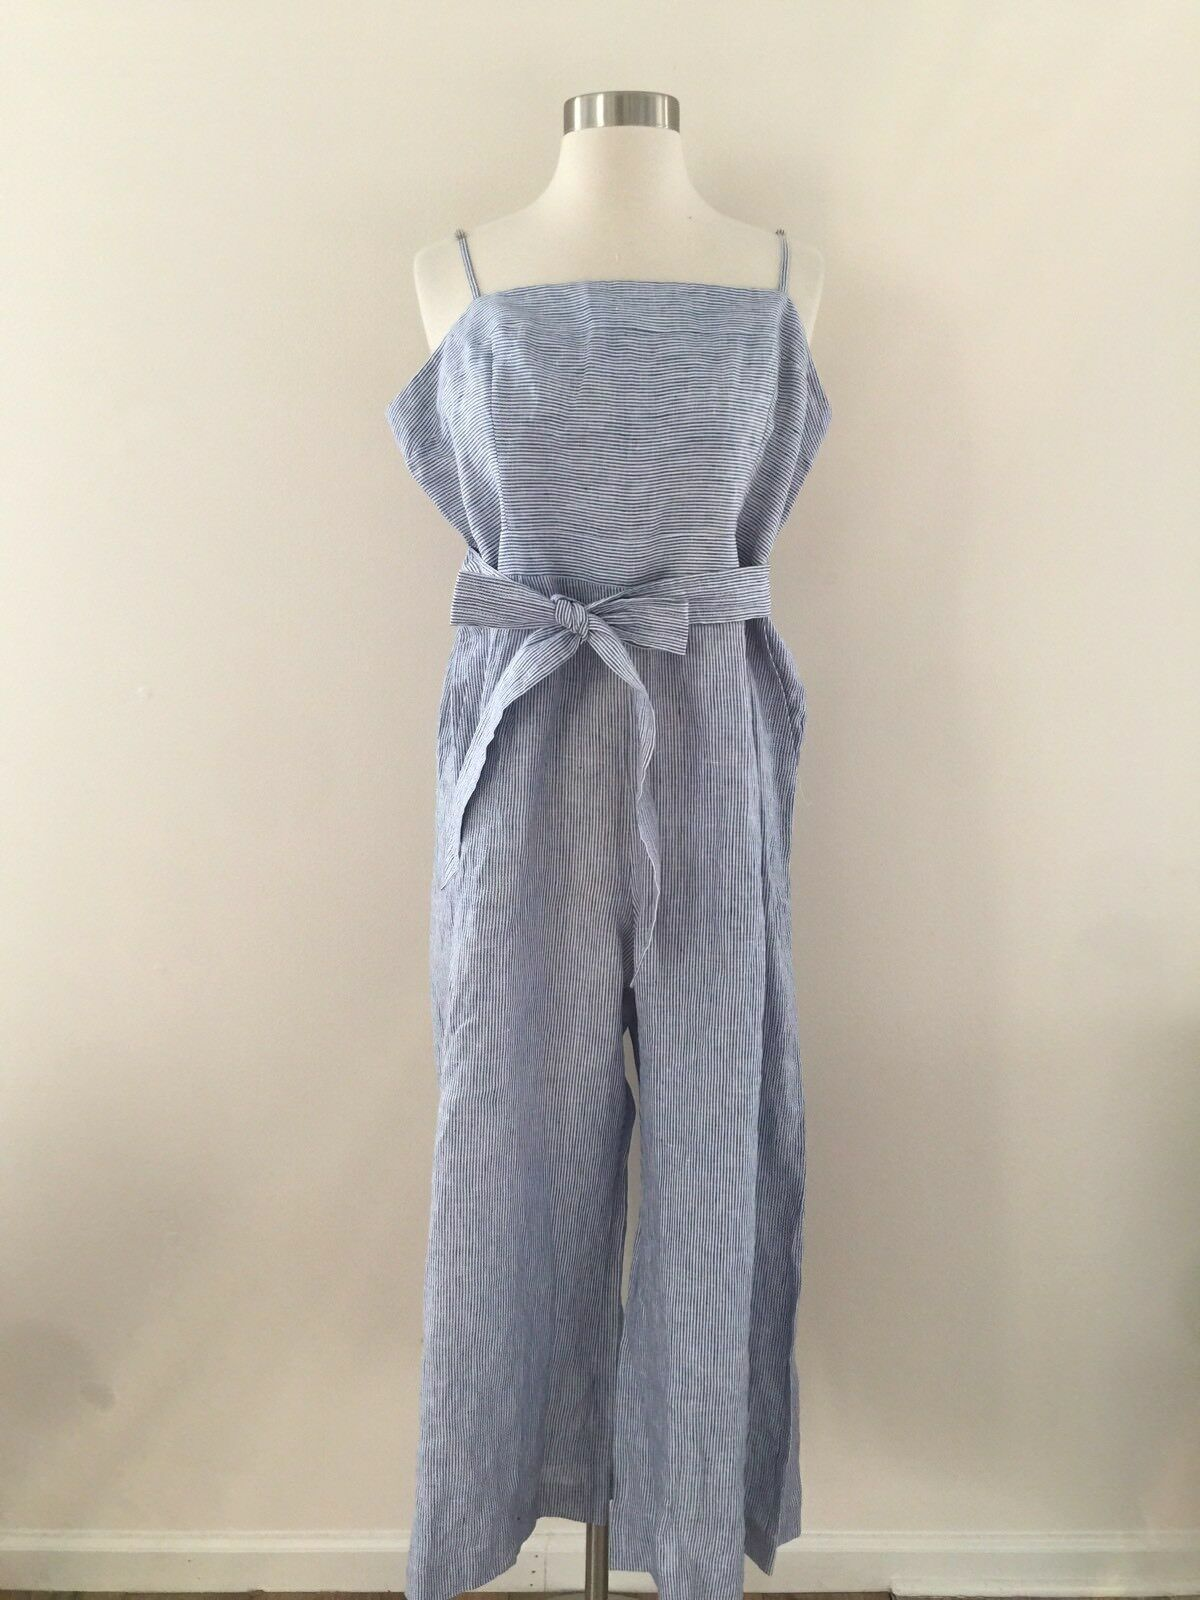 New JCREW Striped Linen Jumpsuit With Tie Size 14 bluee White Stripes G5964